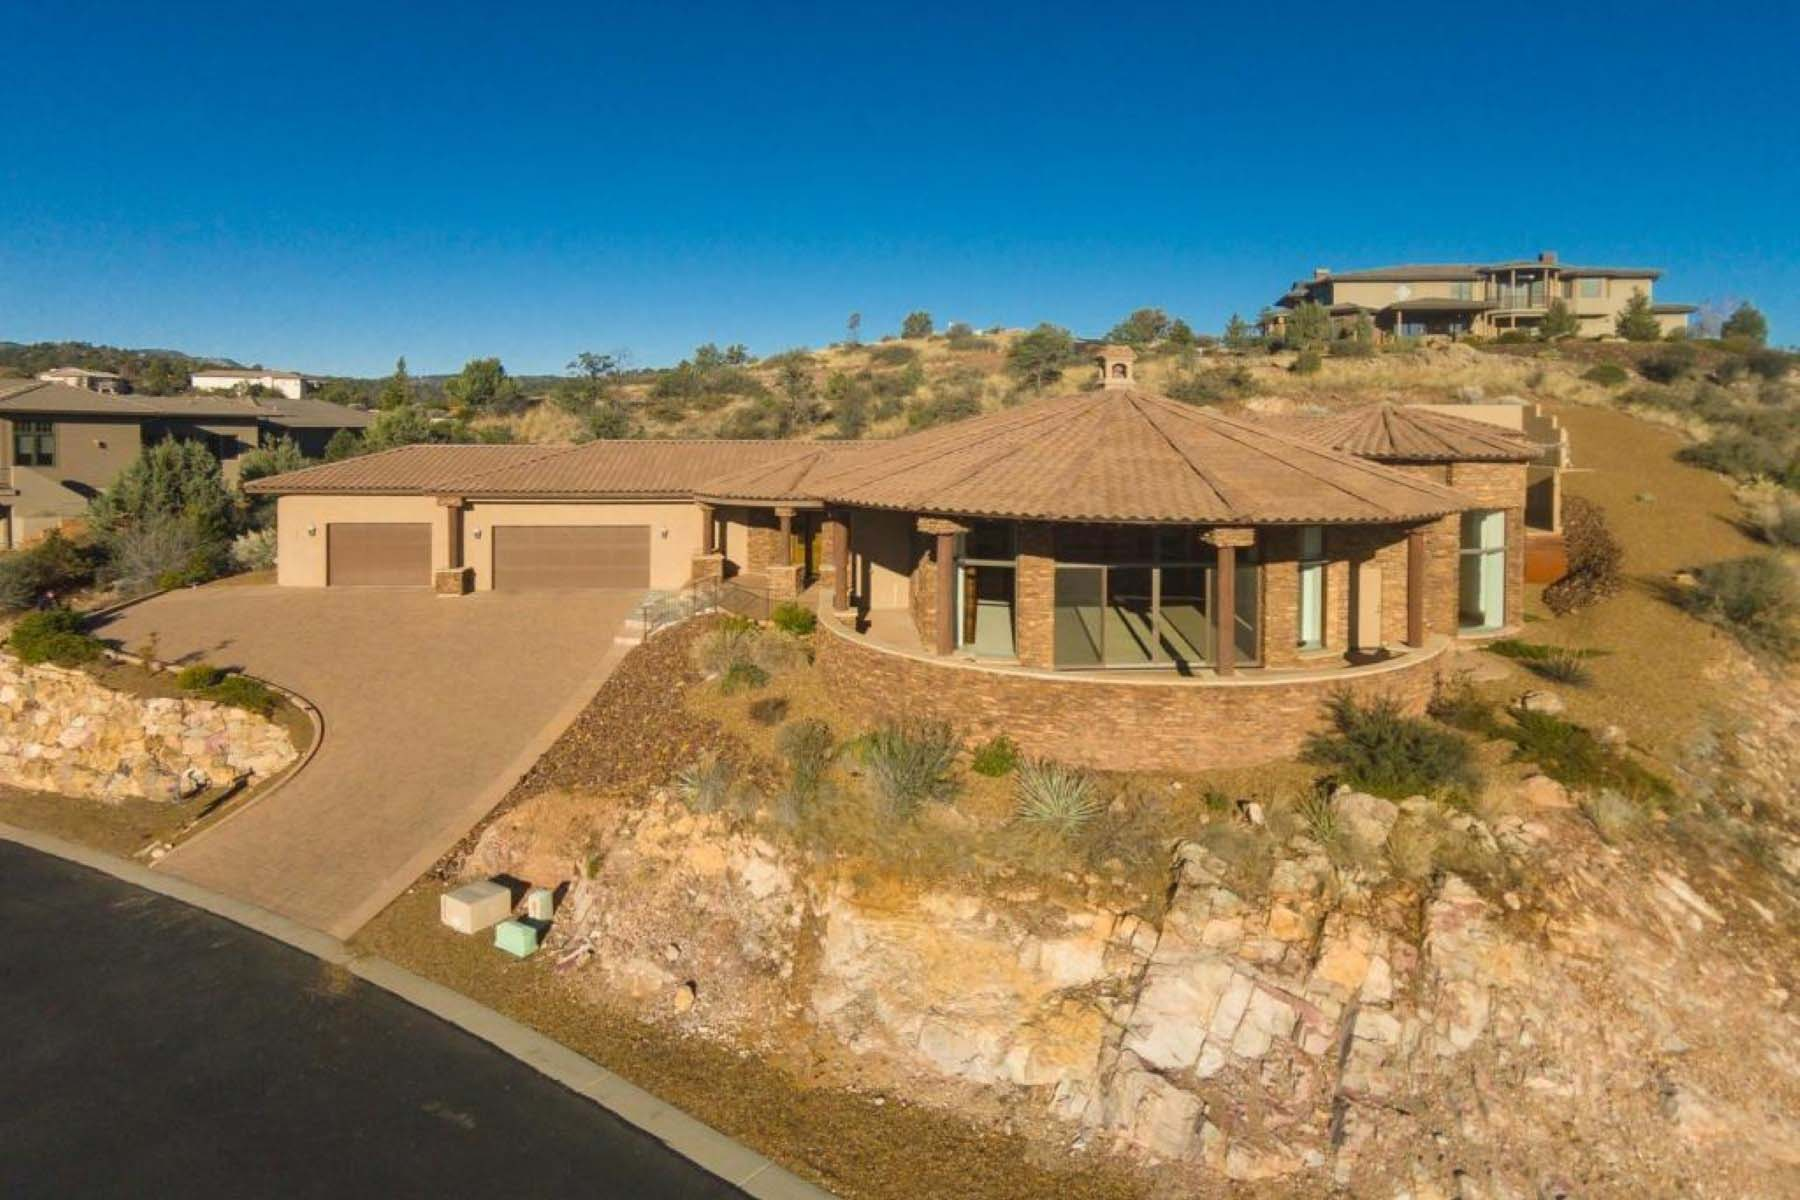 Single Family Home for Sale at 2008 custom home with dramatic 180+ degree views. 1434 Tallside Prescott, Arizona 86305 United States